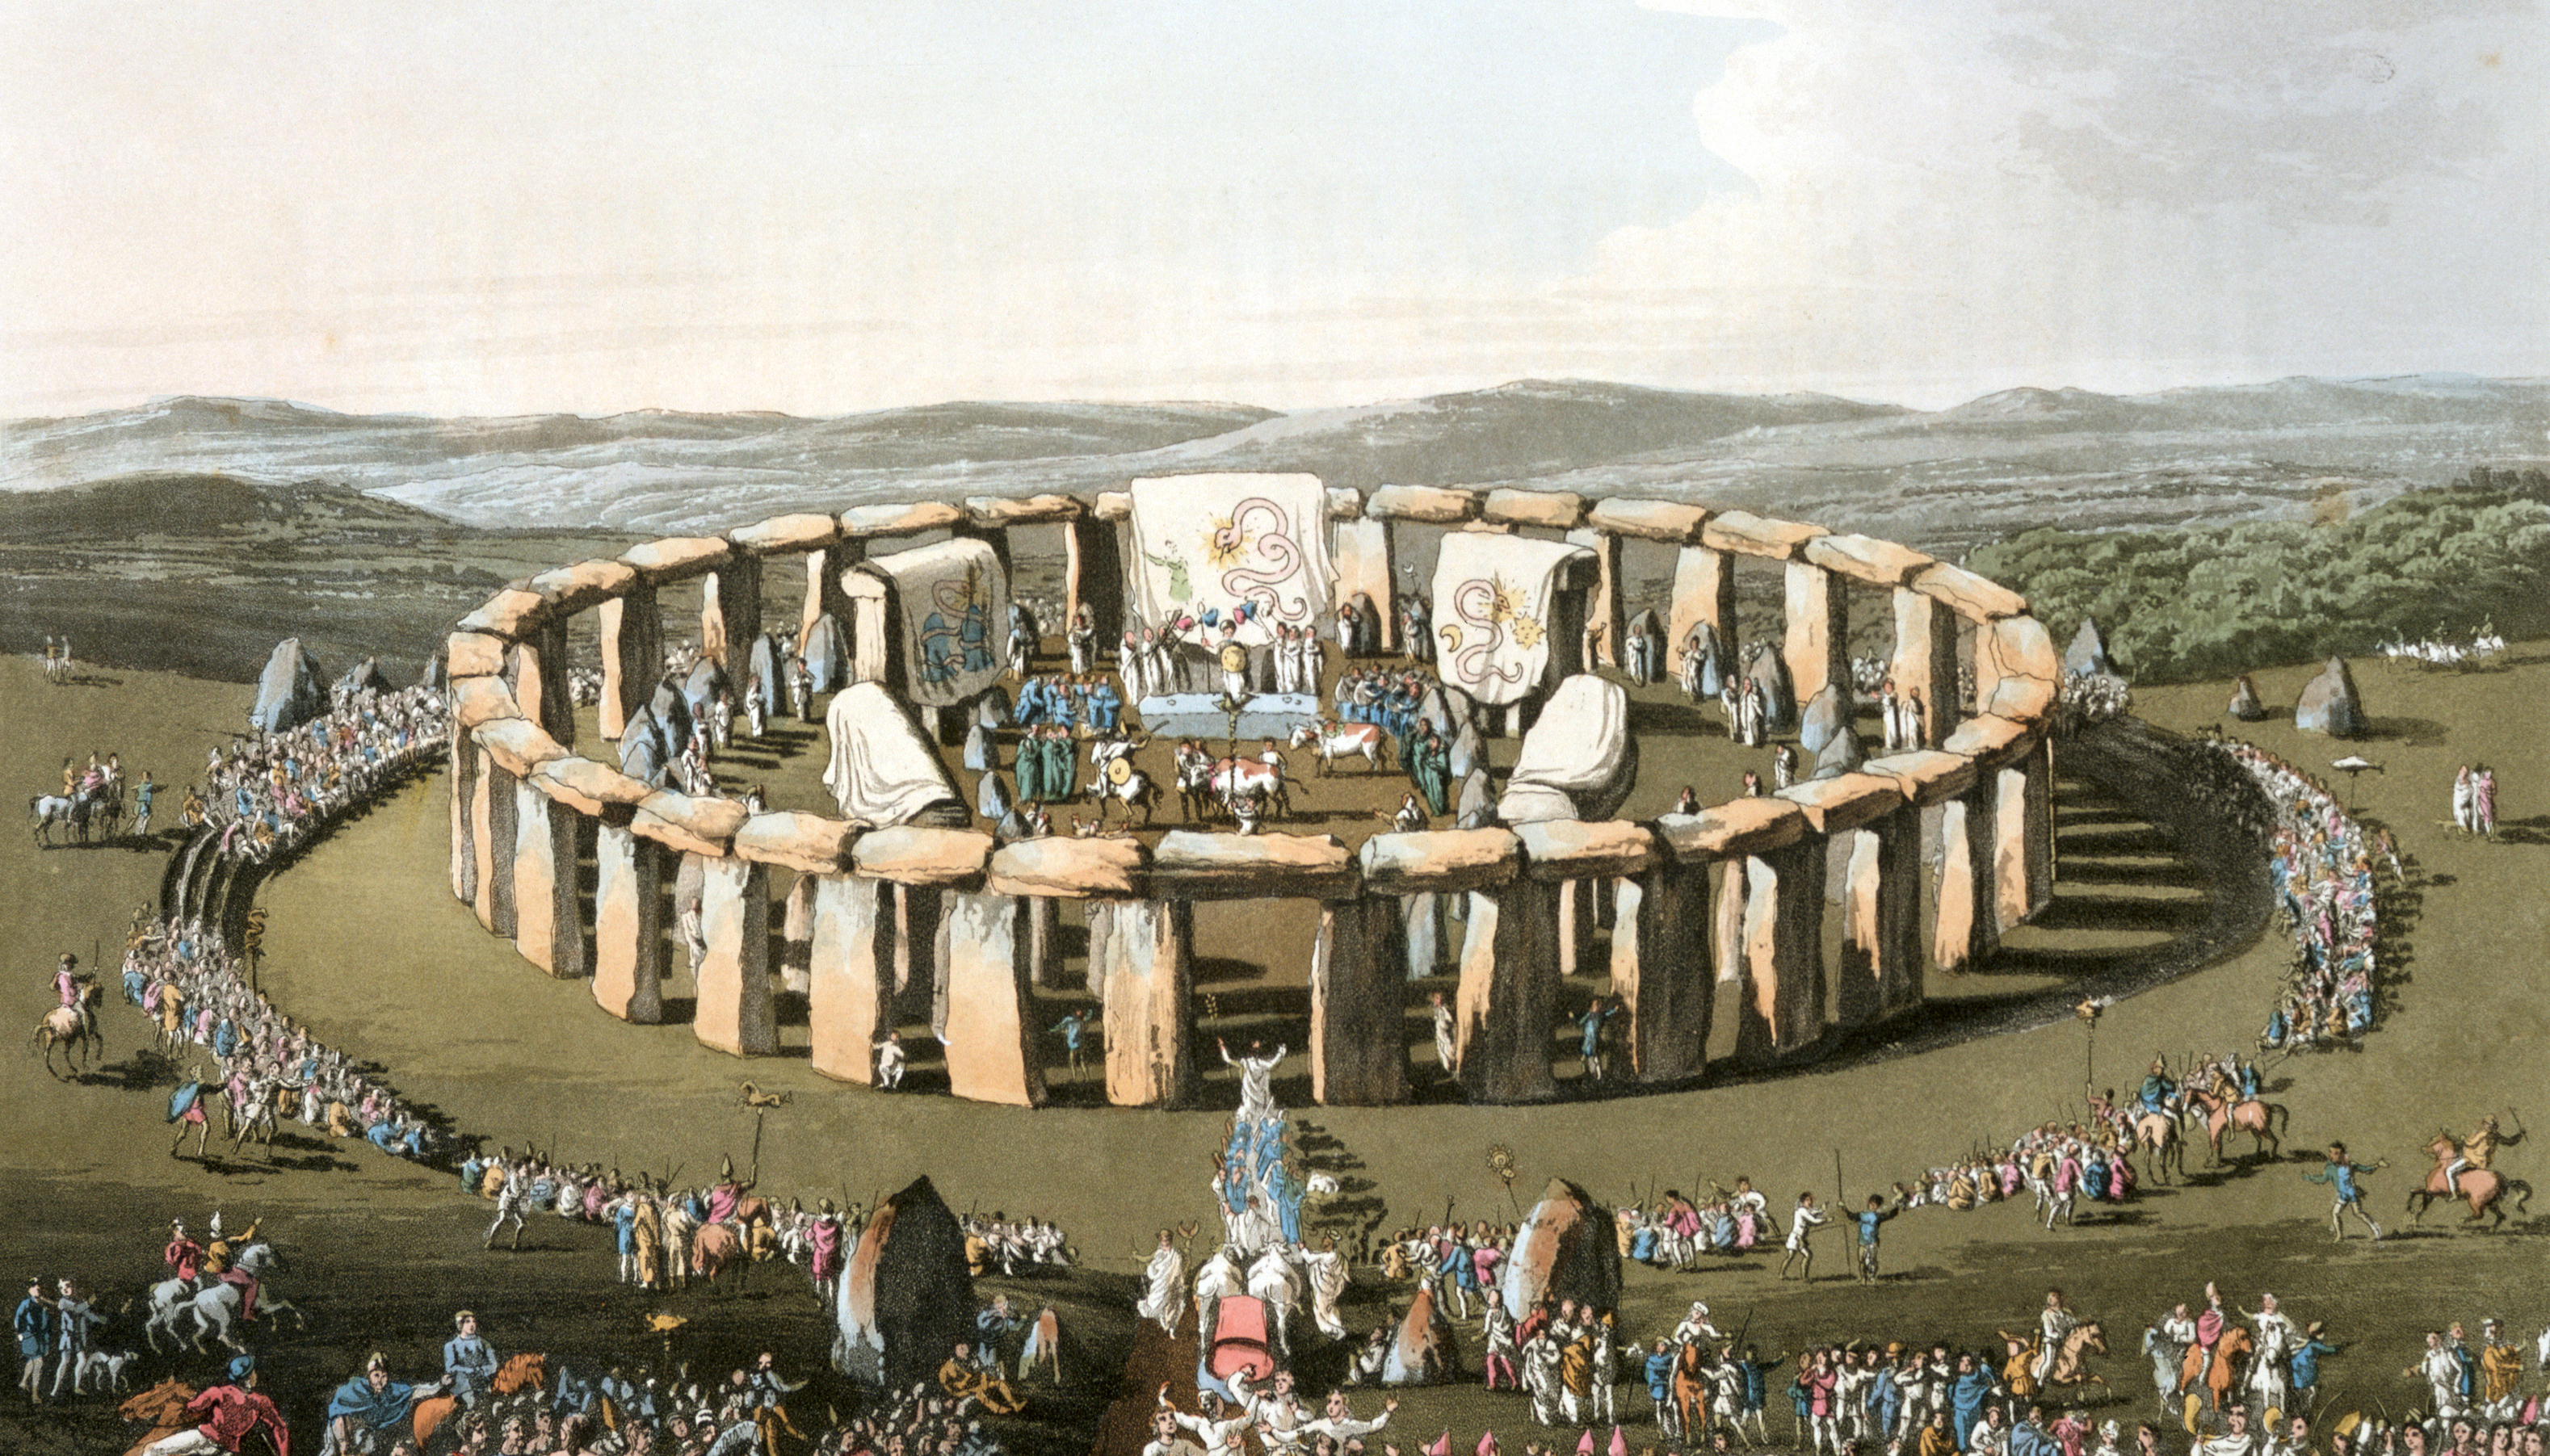 Illustration of a Druid Ceremony at Stonehenge